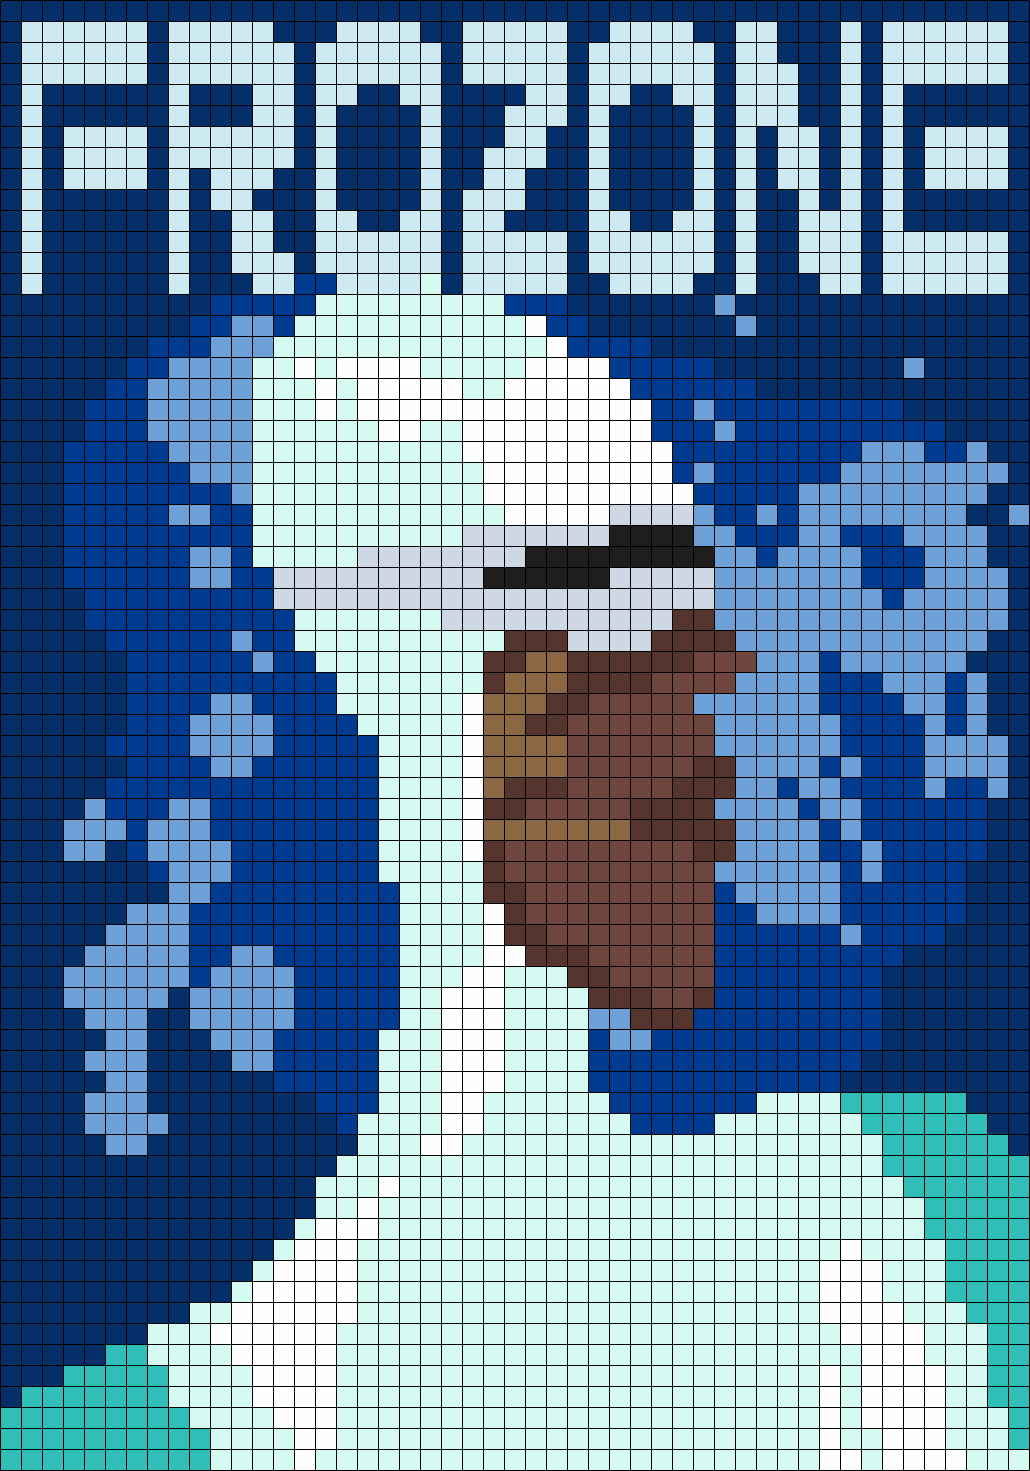 Frozone Poster (from The Incredibles)